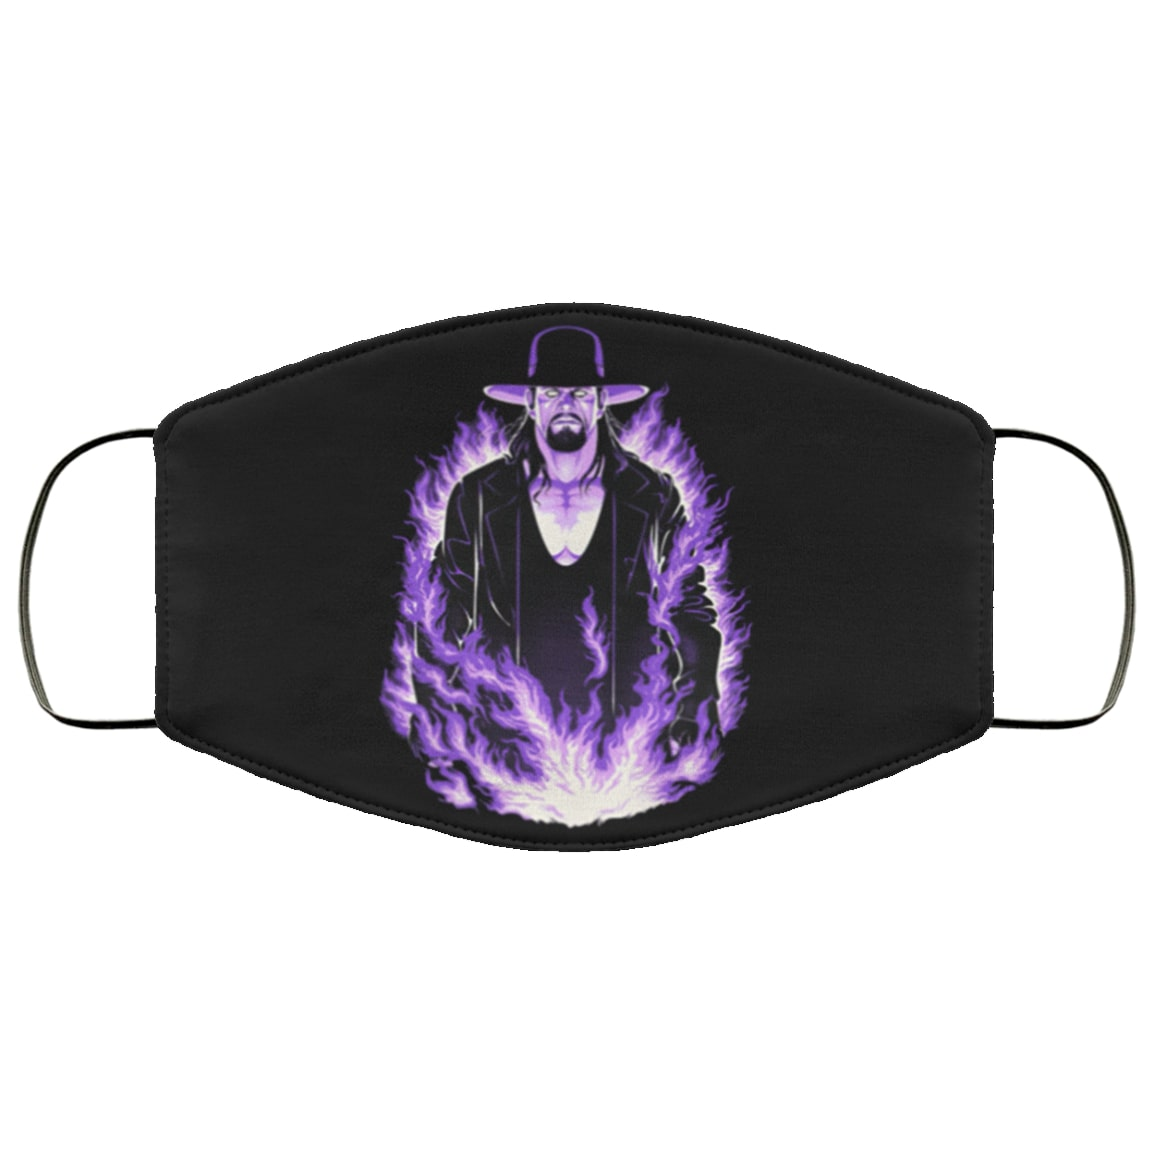 WWE the undertaker anti pollution face mask 4